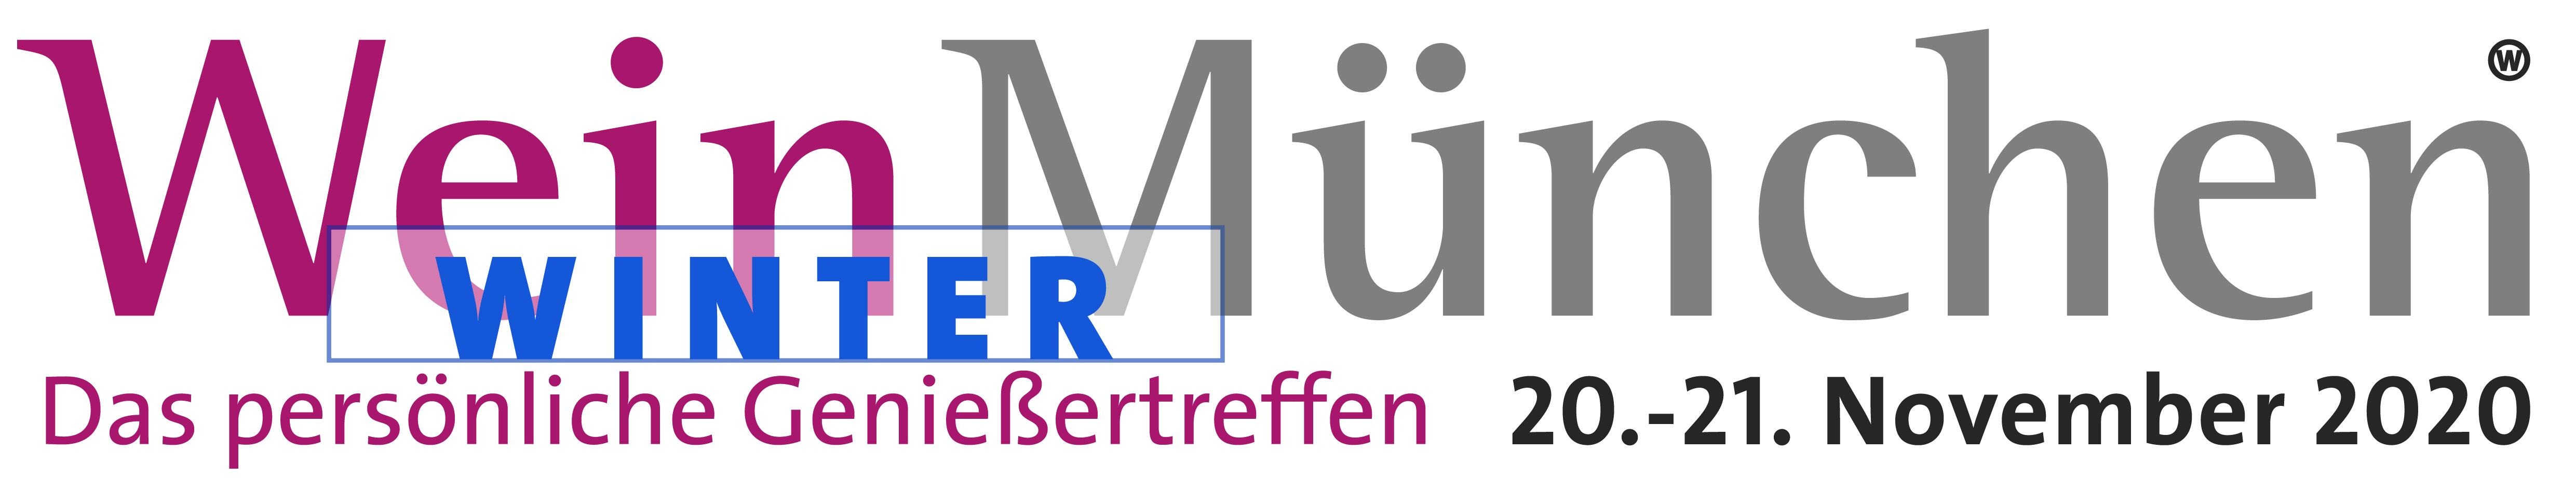 WeinMünchen Winter Logo